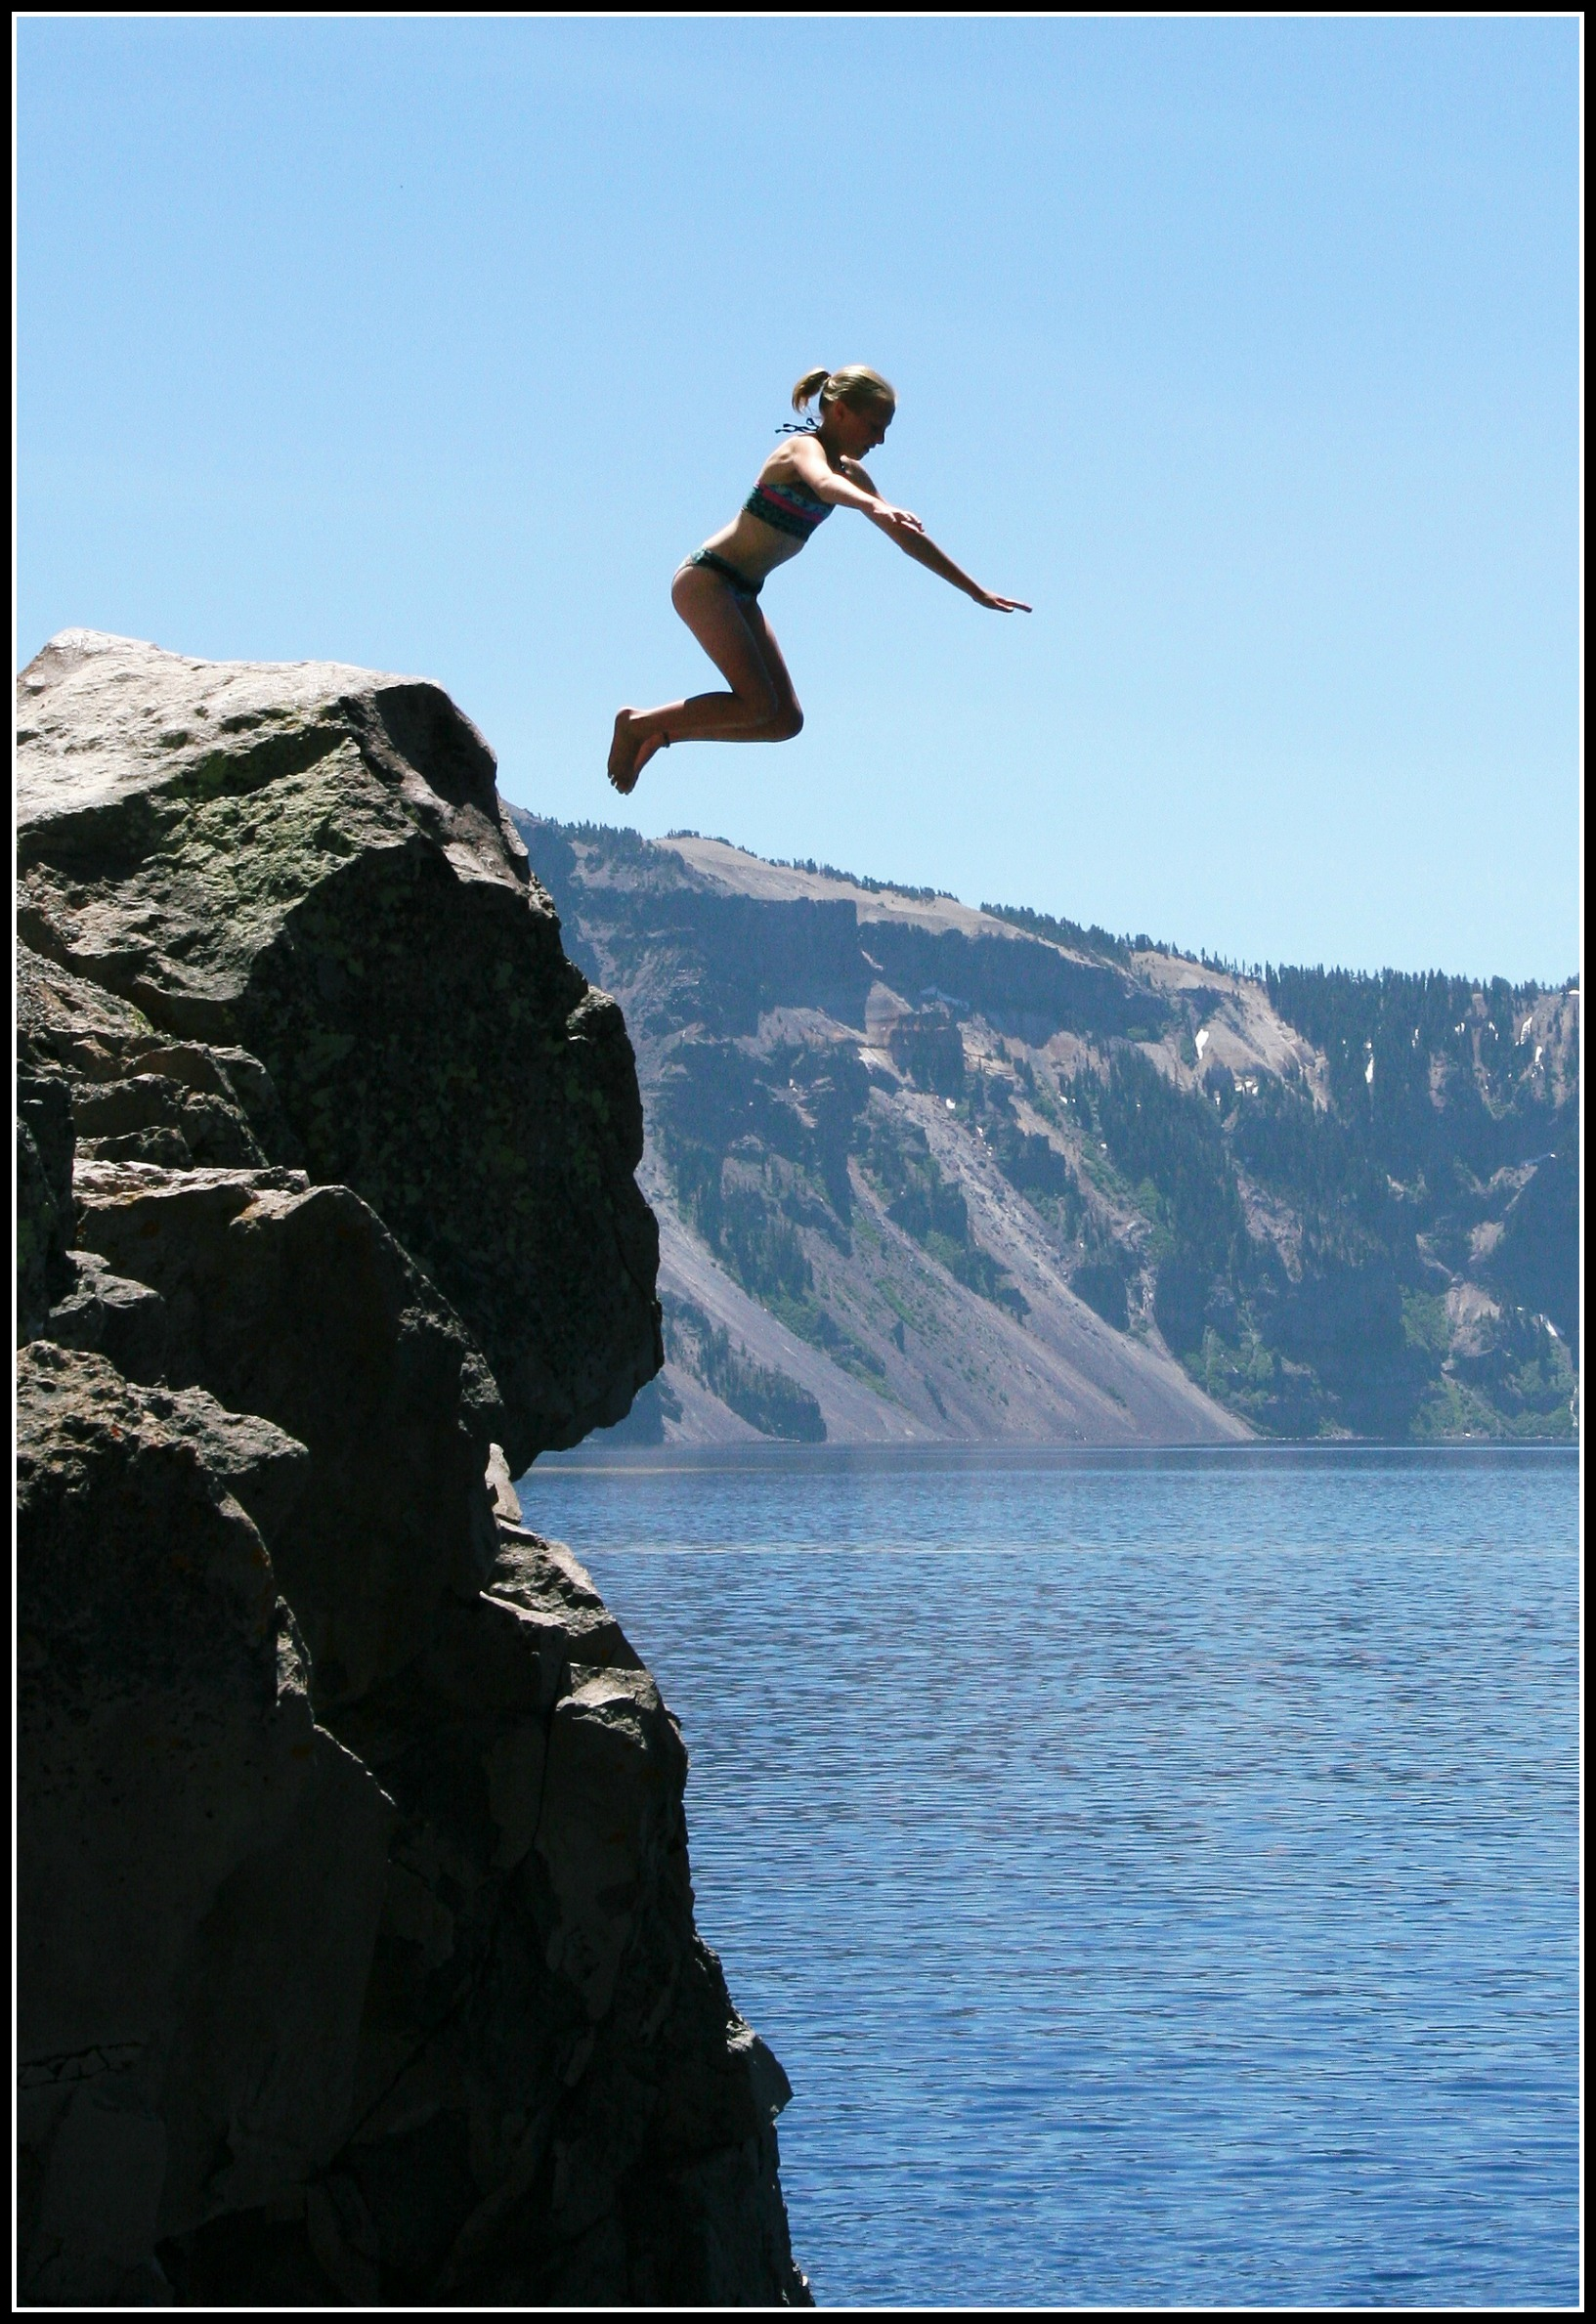 Person about to fall off cliff clipart vector free Man jumping off a cliff clipart - Clip Art Library vector free